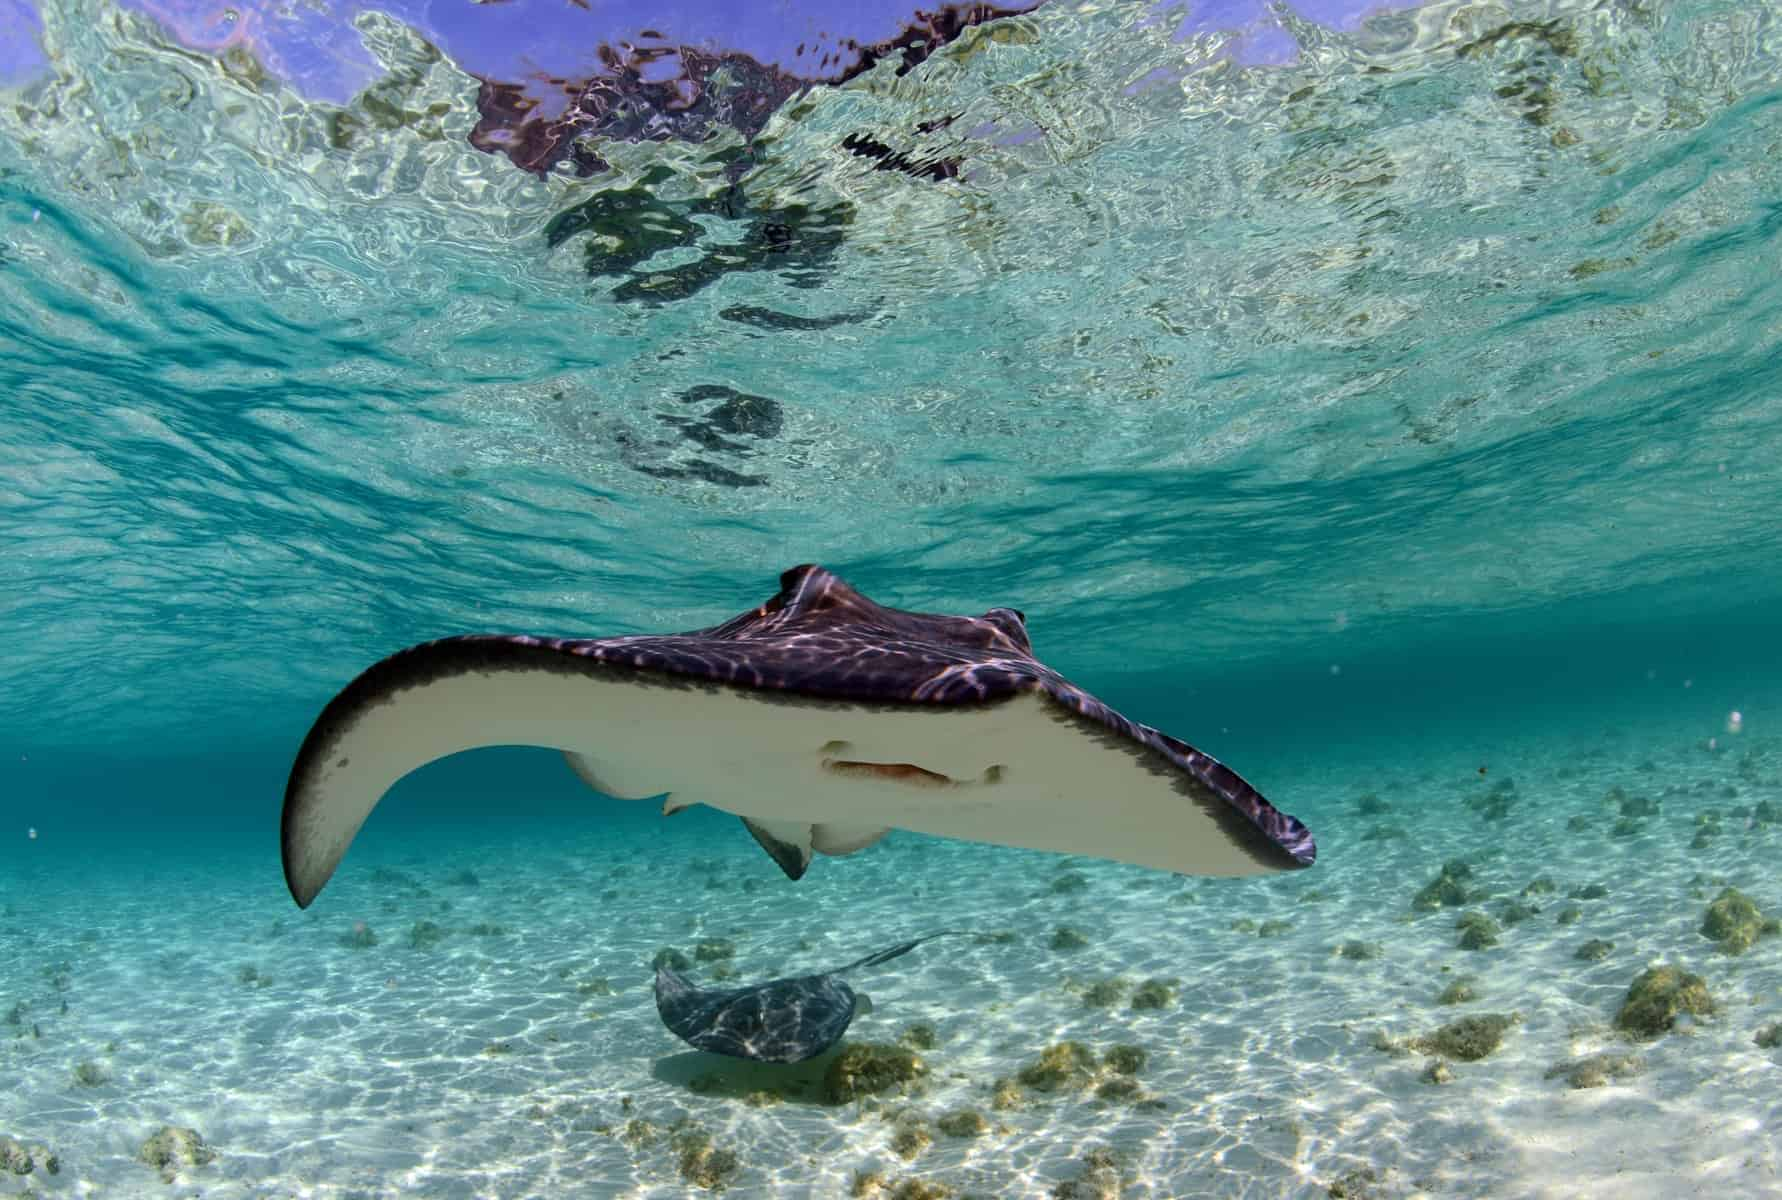 spotted eagle ray and stingray in ocean